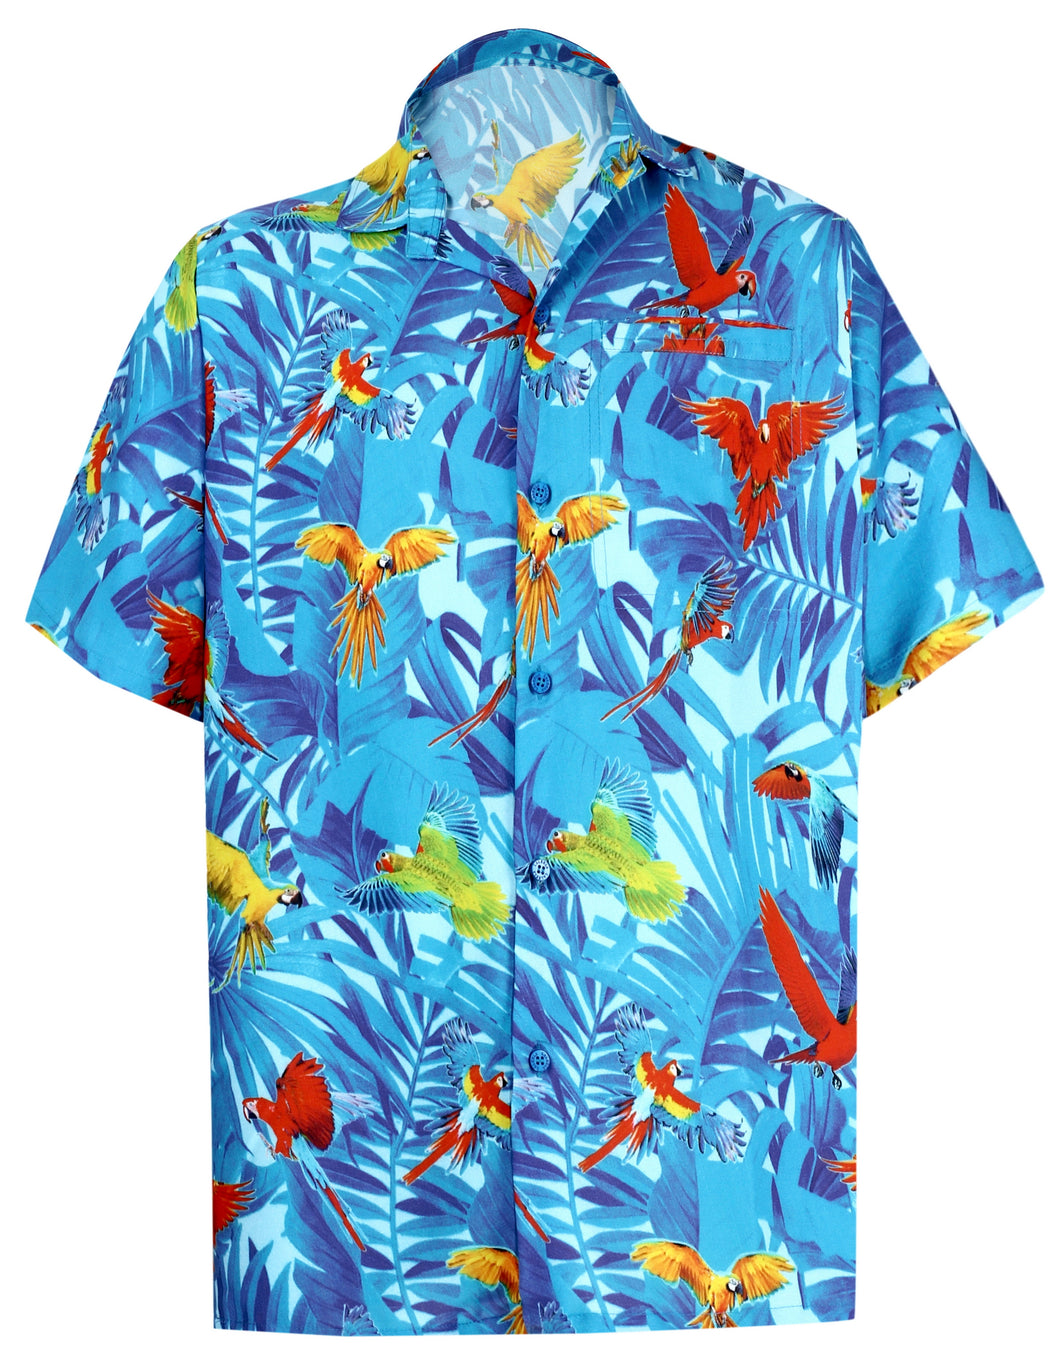 la-leela-shirt-casual-button-down-short-sleeve-beach-shirt-men-aloha-pocket-Shirt-Blue_W601